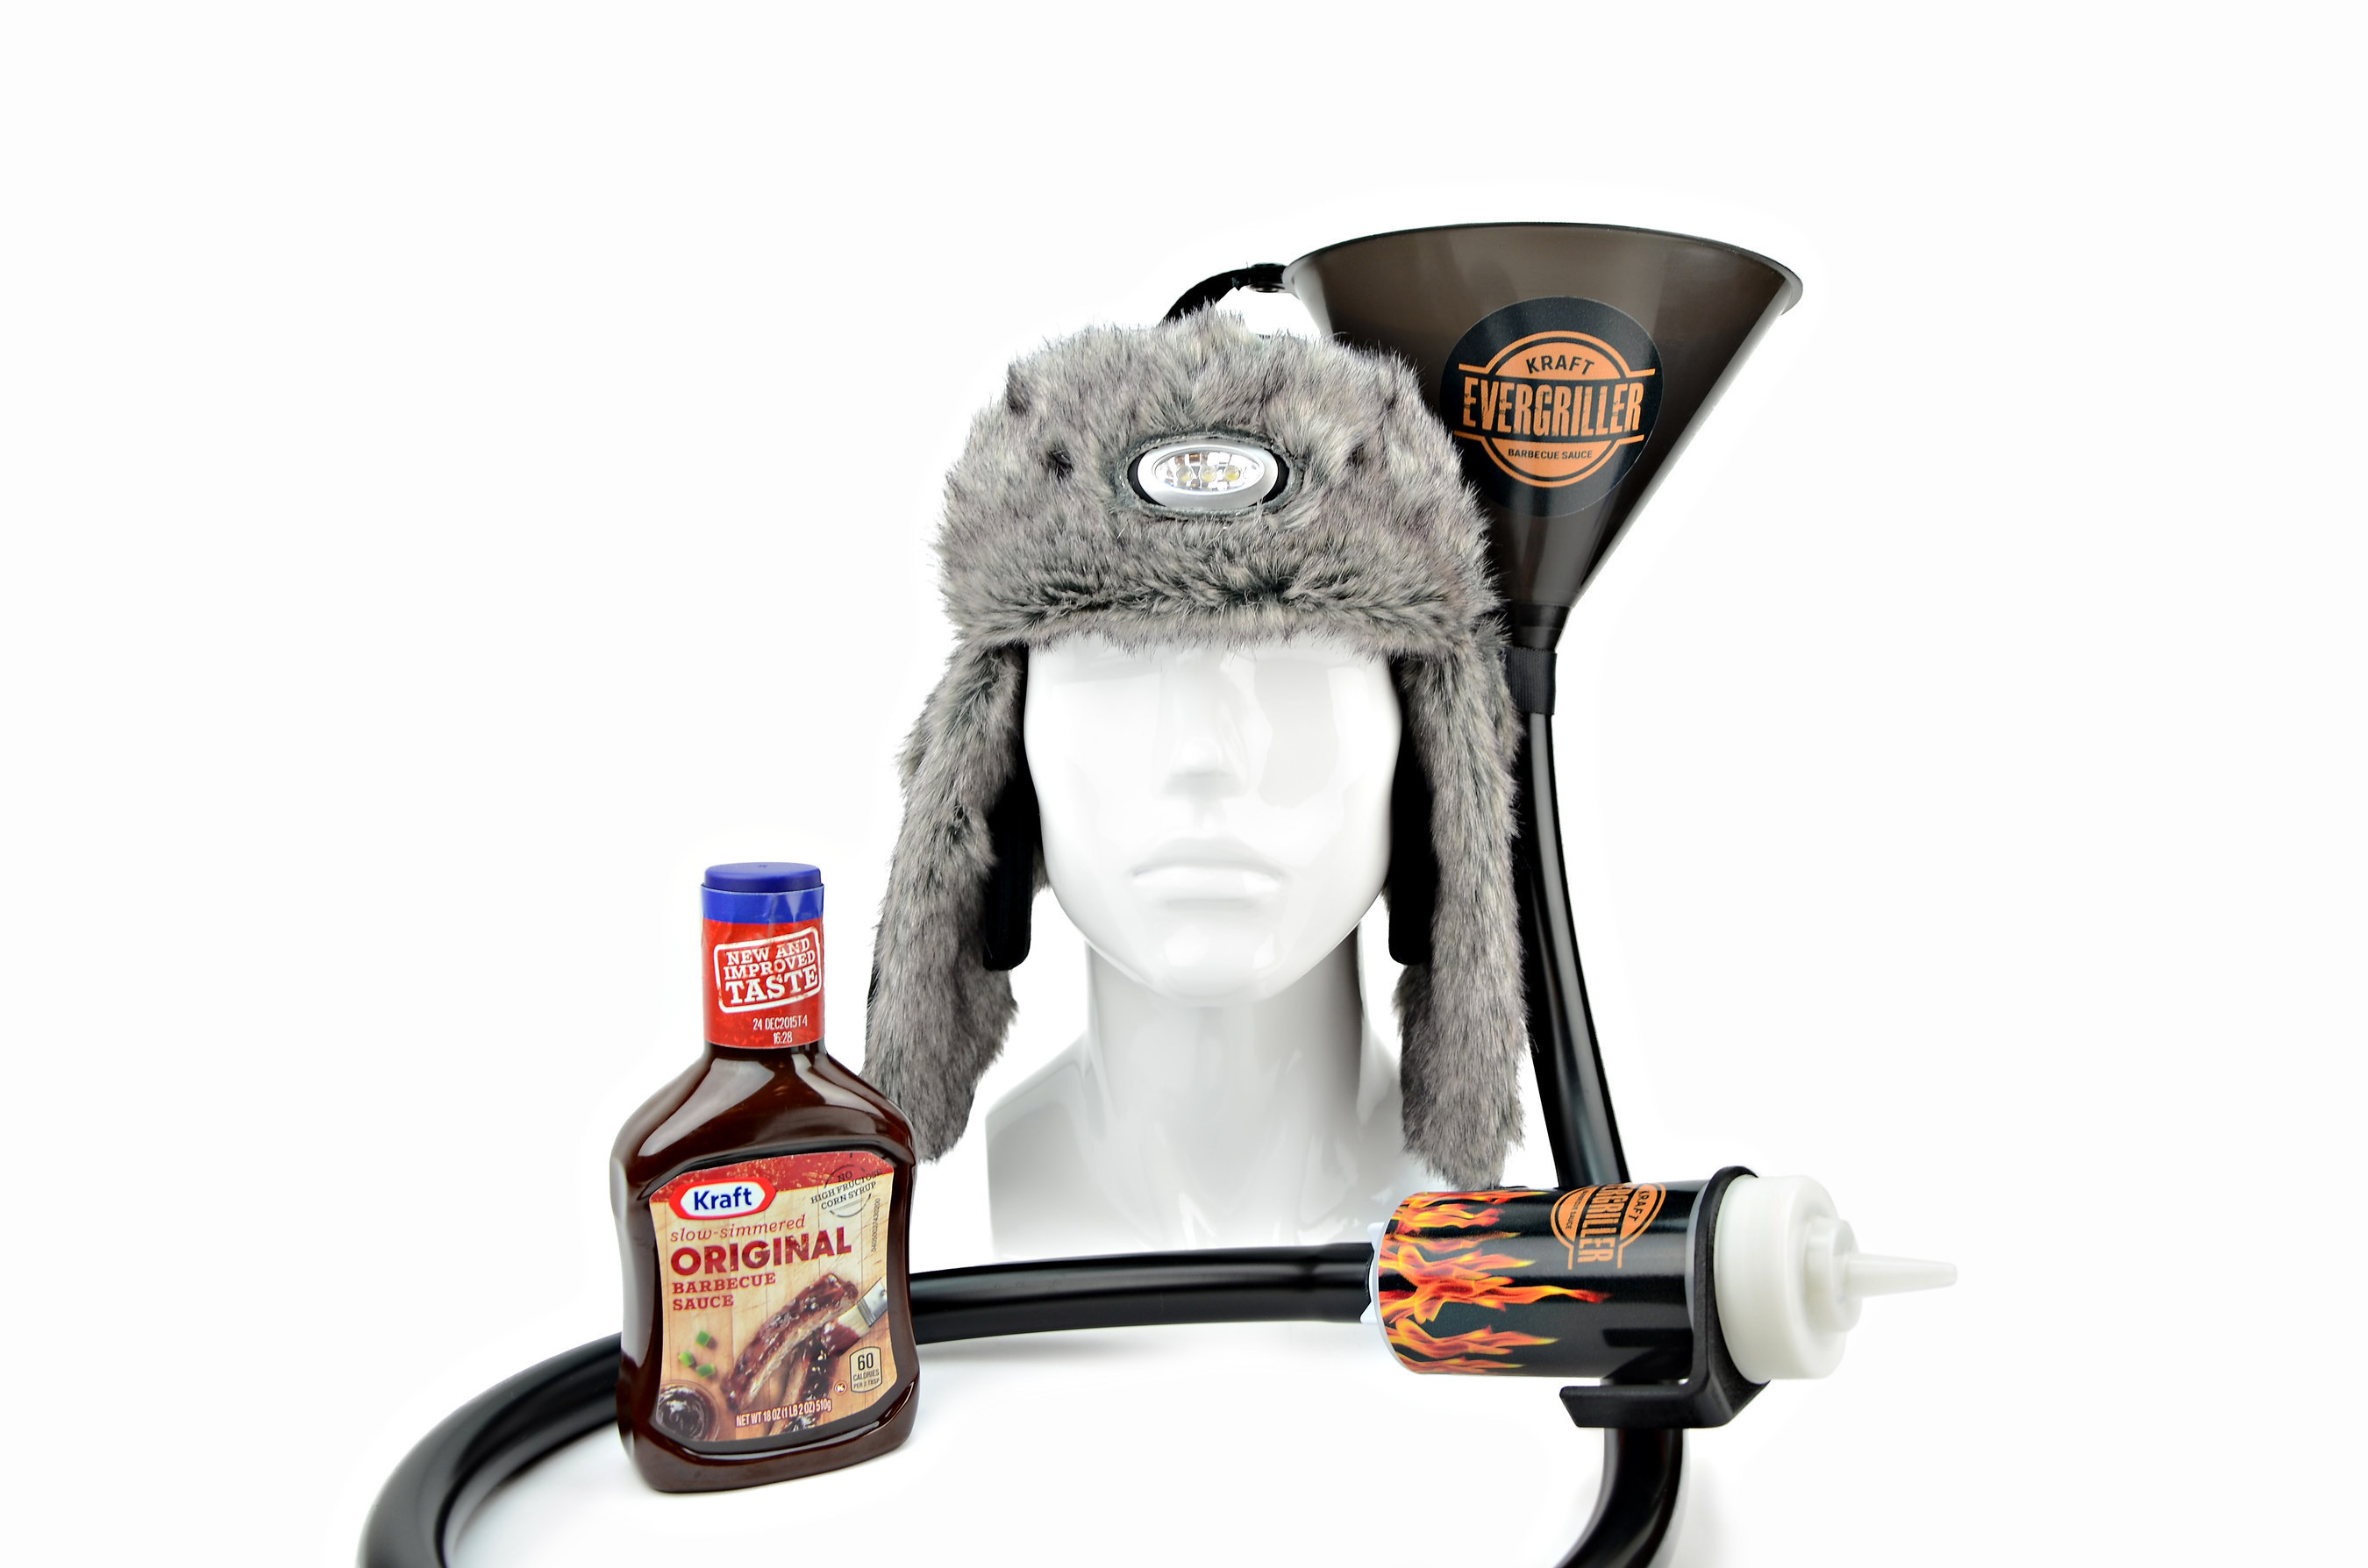 Kraft Barbecue Sauce's Evergriller Hot Head Hat is an all-purpose, weather-proof hat designed to keep grillers warm while acting as a holder for the most important grill necessities.